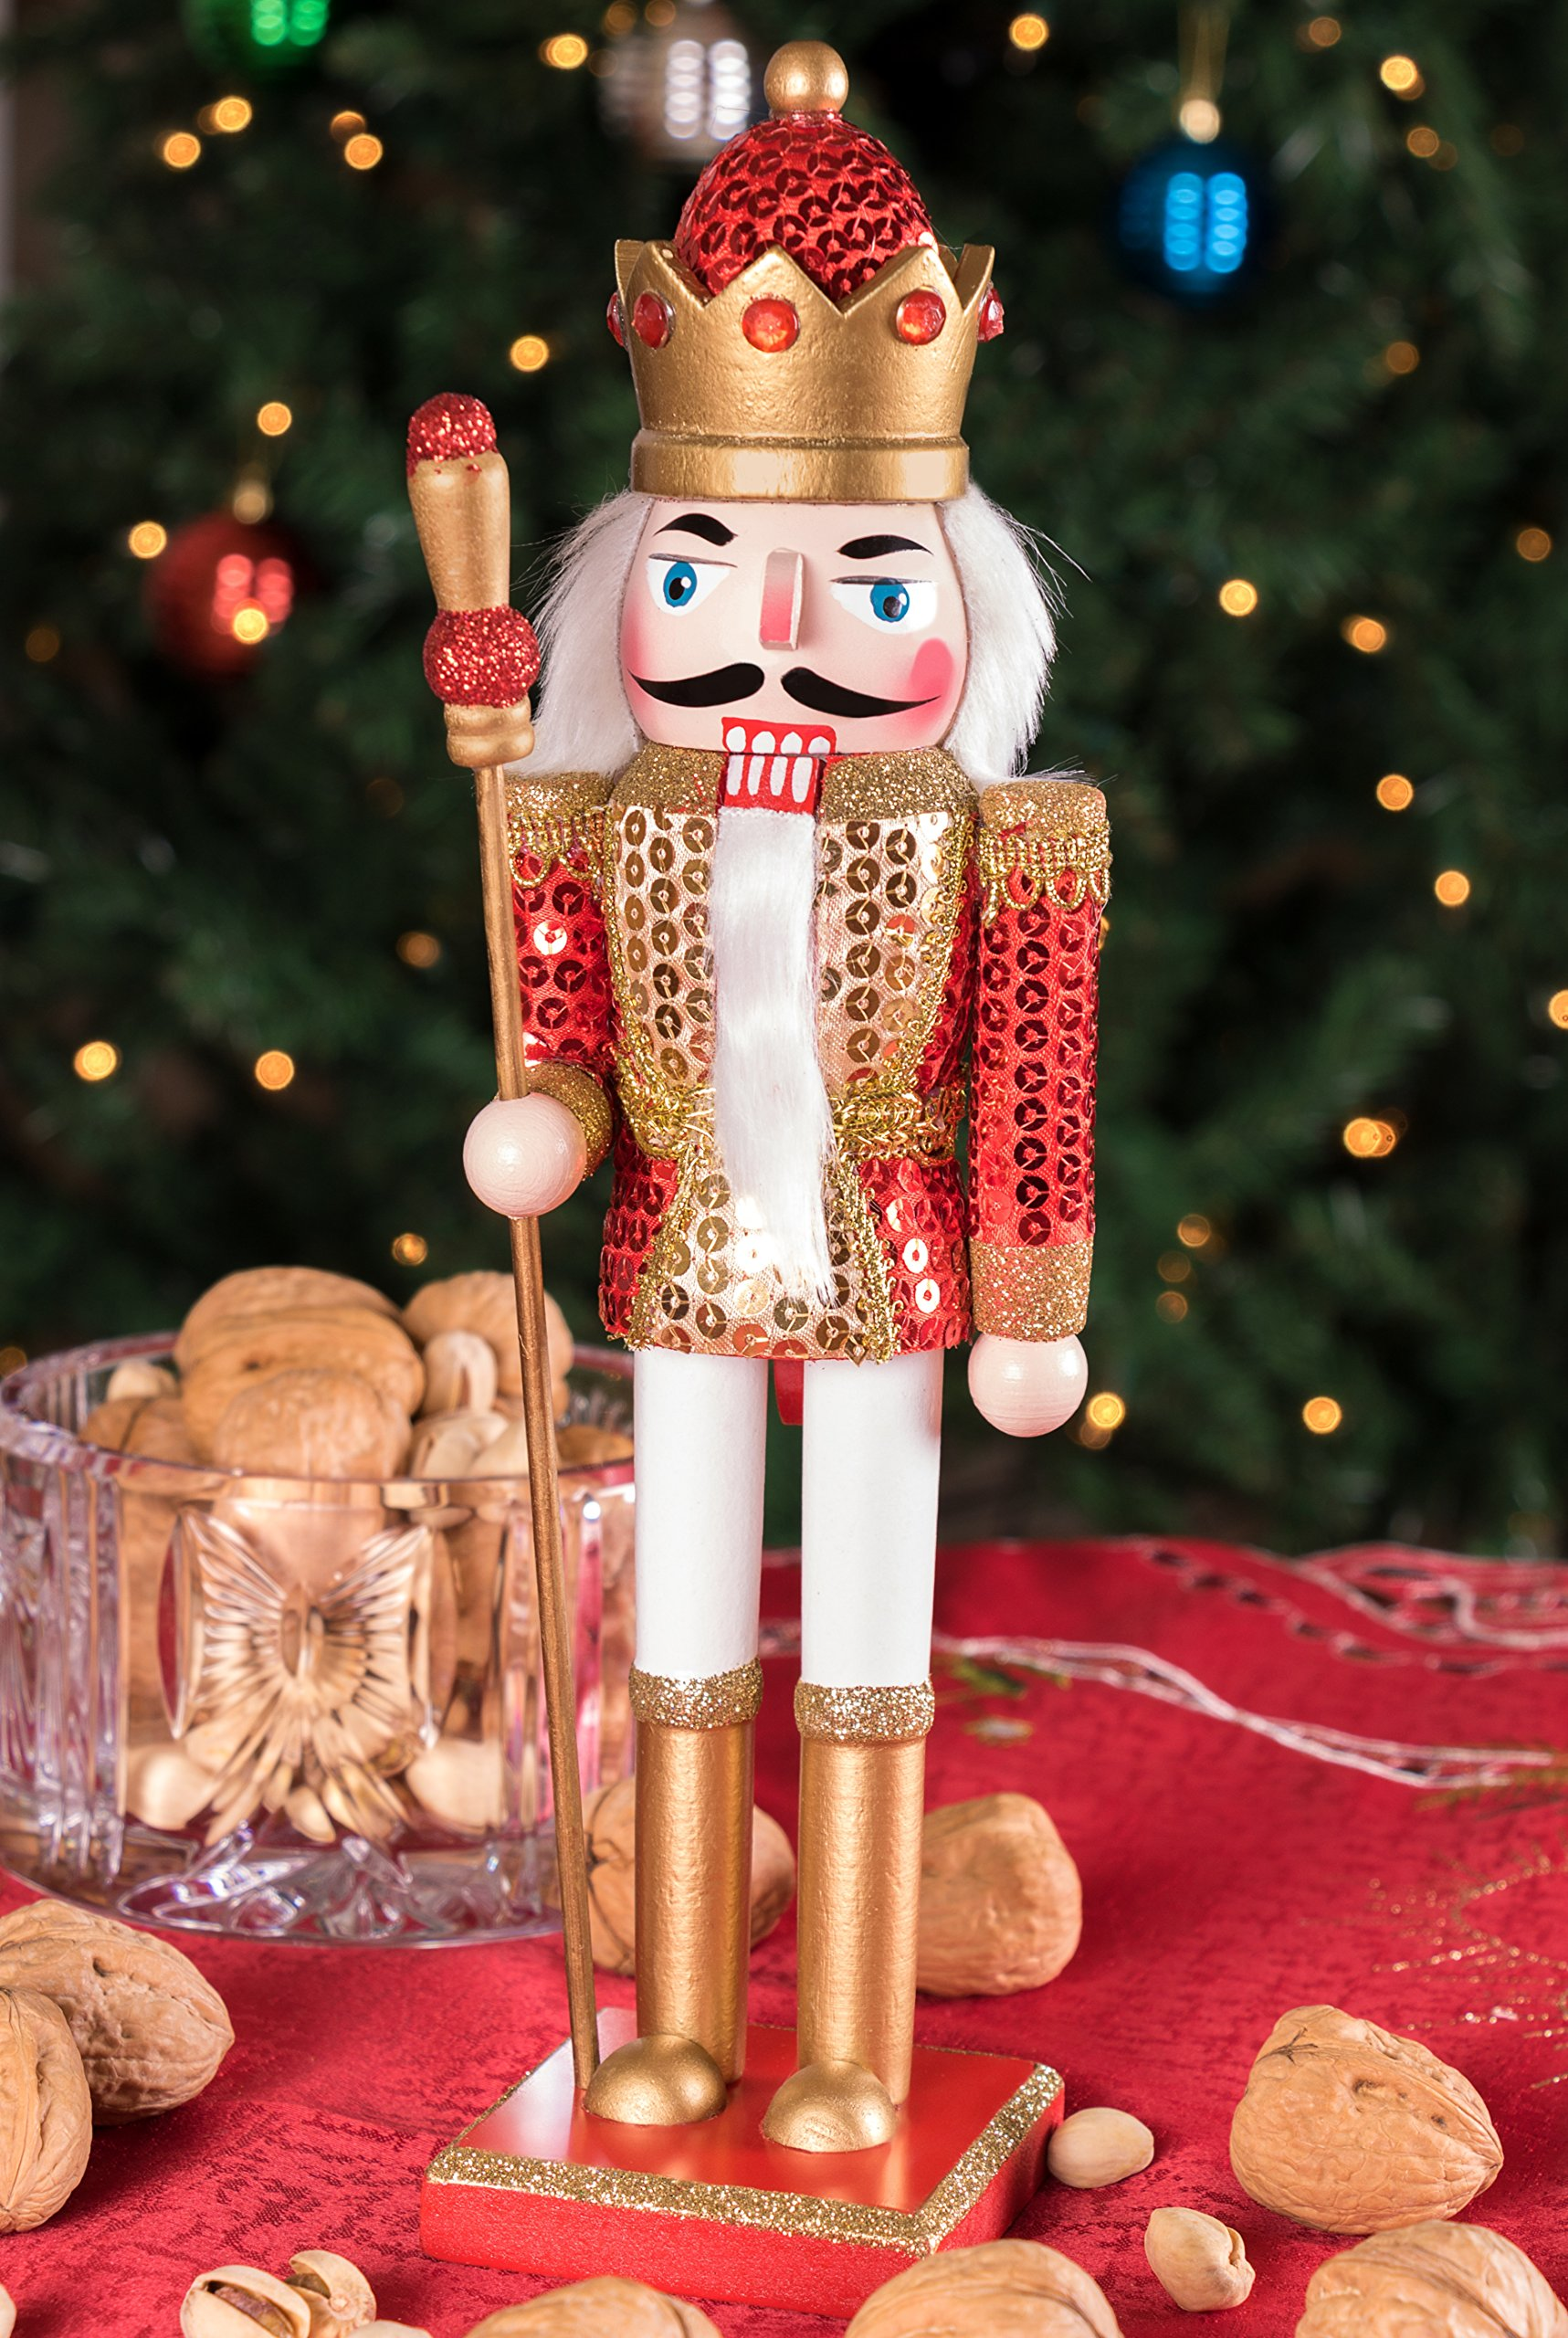 King Nutcracker | Traditional Christmas Decor | With King's Royal Scepter | Wearing Red and Gold Sequin Shirt | Perfect for Any Collection | Perfect for Shelves & Tables | 100% Wood | 12'' Tall by Clever Creations (Image #5)